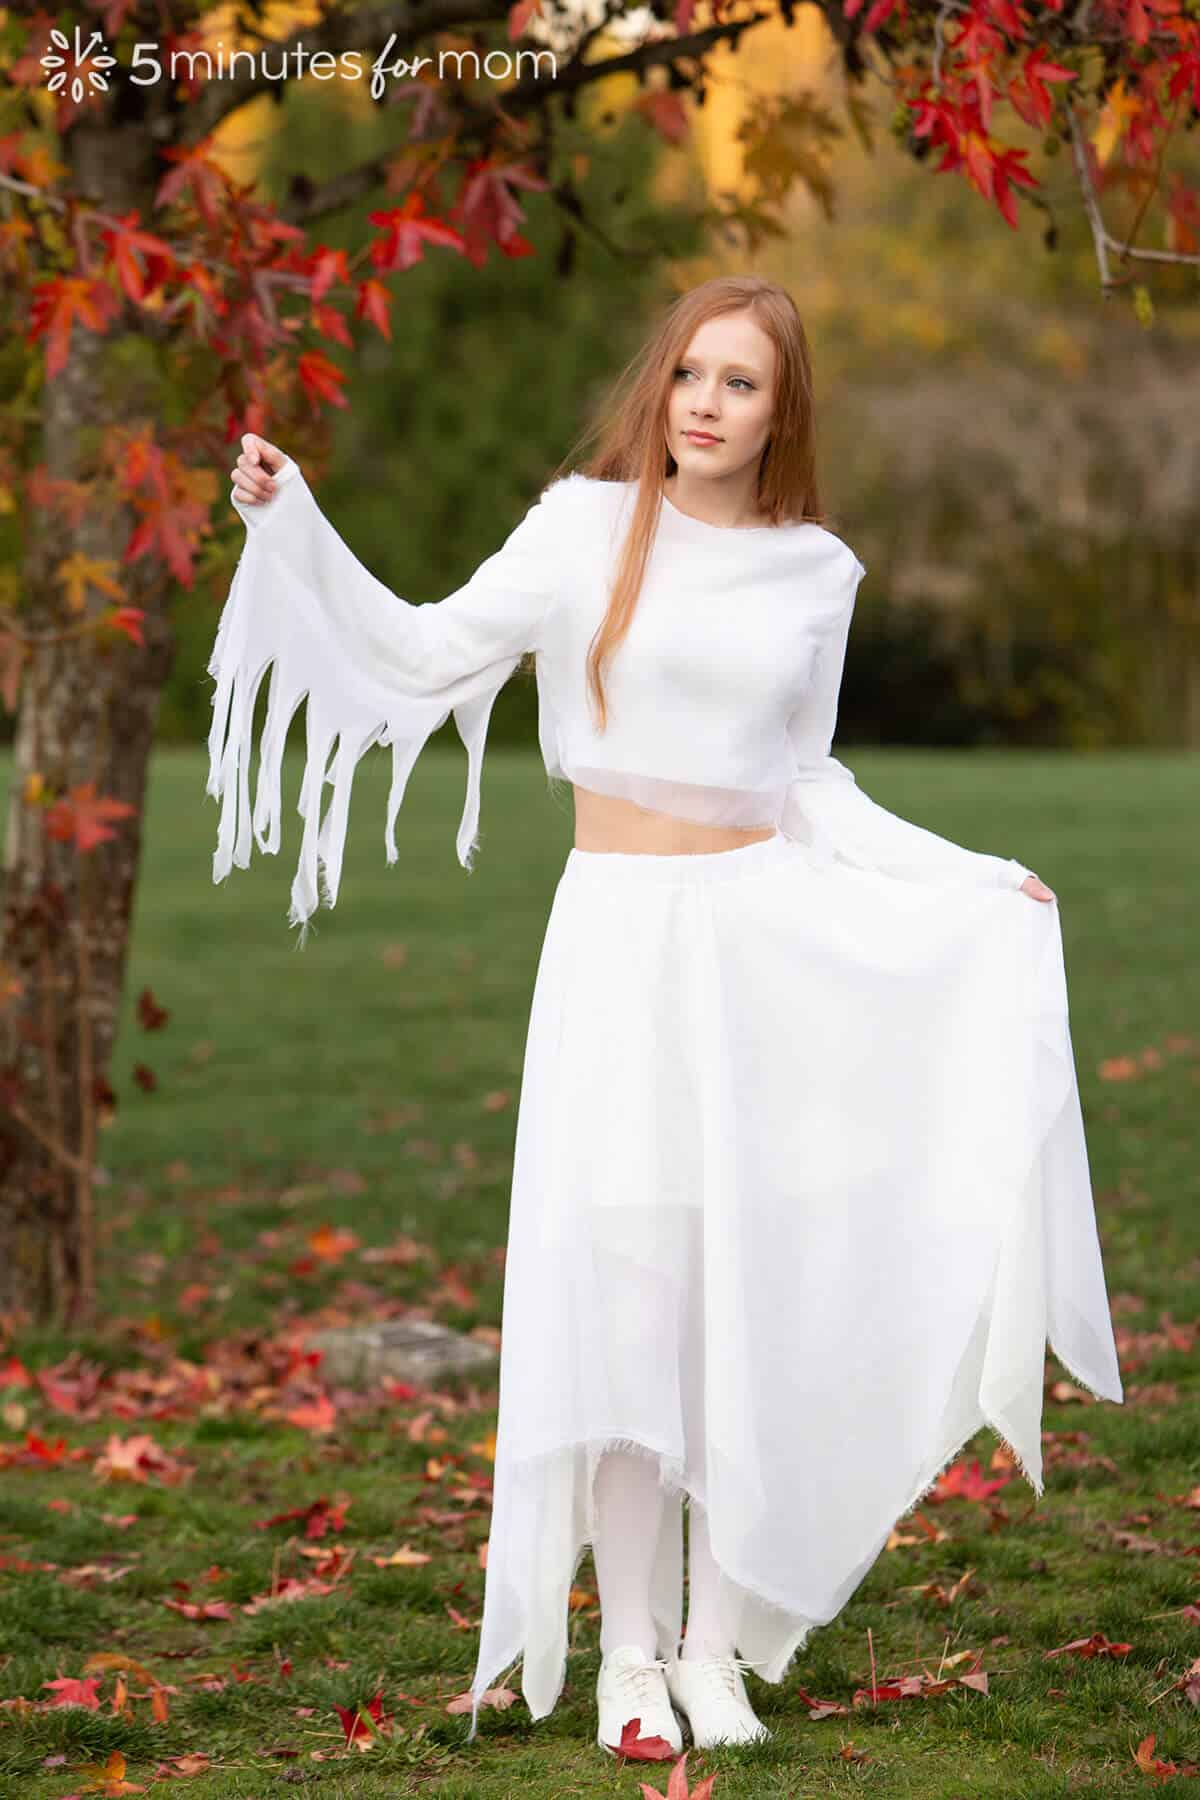 how to sew handkerchief skirt and tattered top for ghost costume